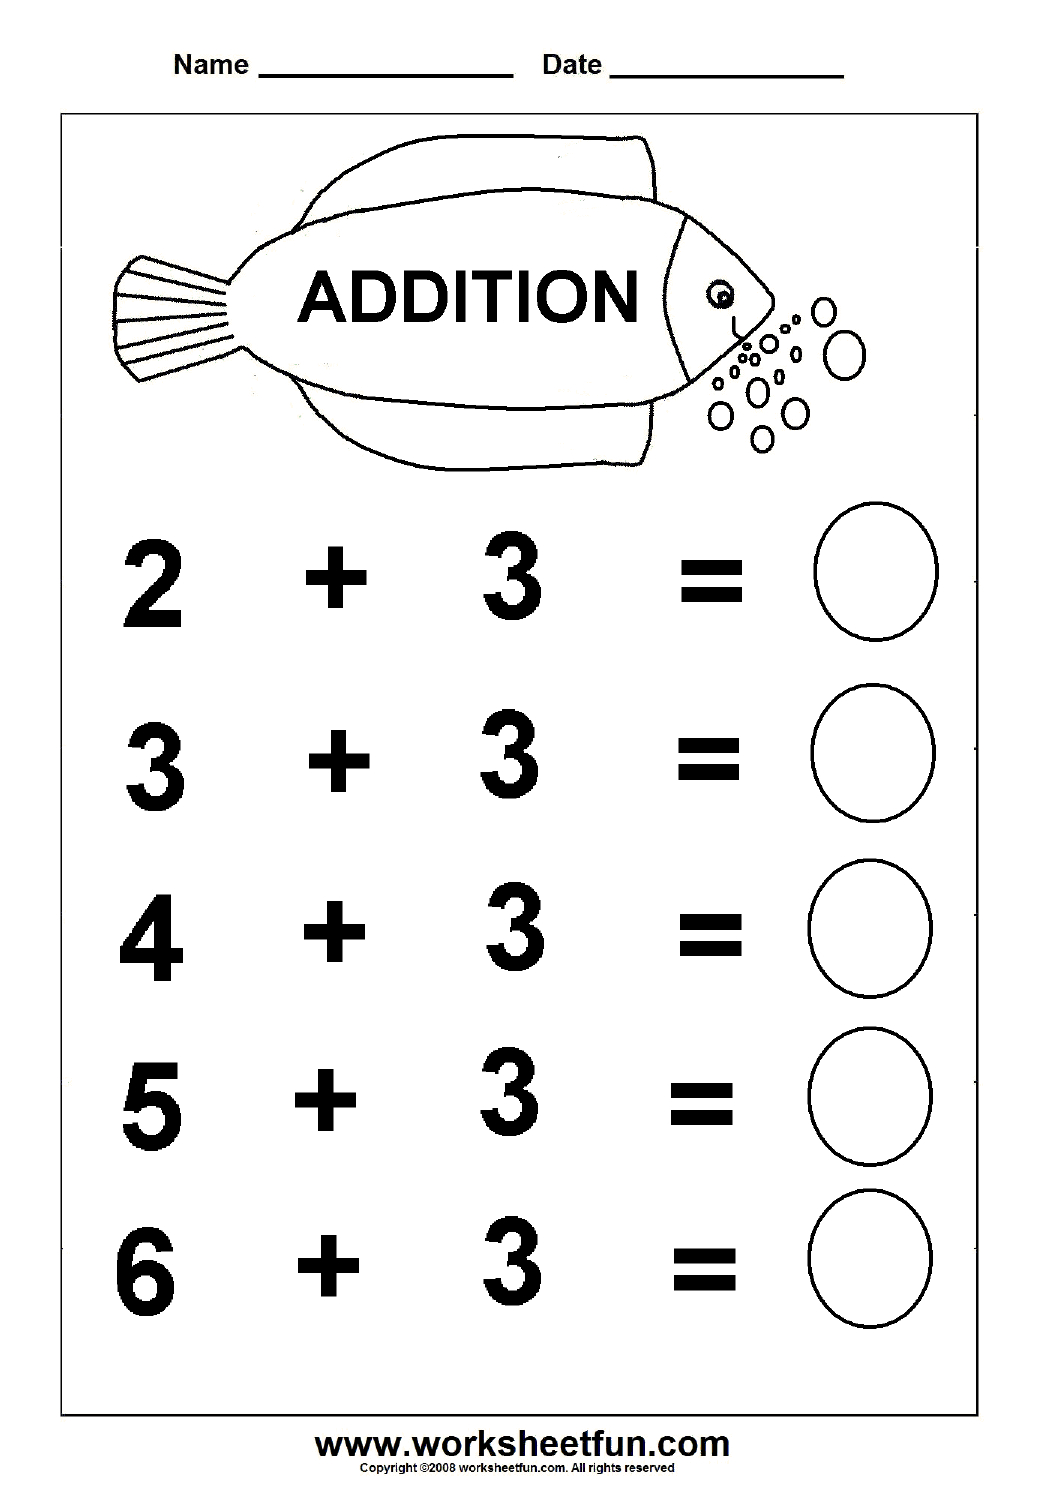 Beginner Addition – 6 Kindergarten Addition Worksheets / Free - Free Printable Worksheets For Lkg Students